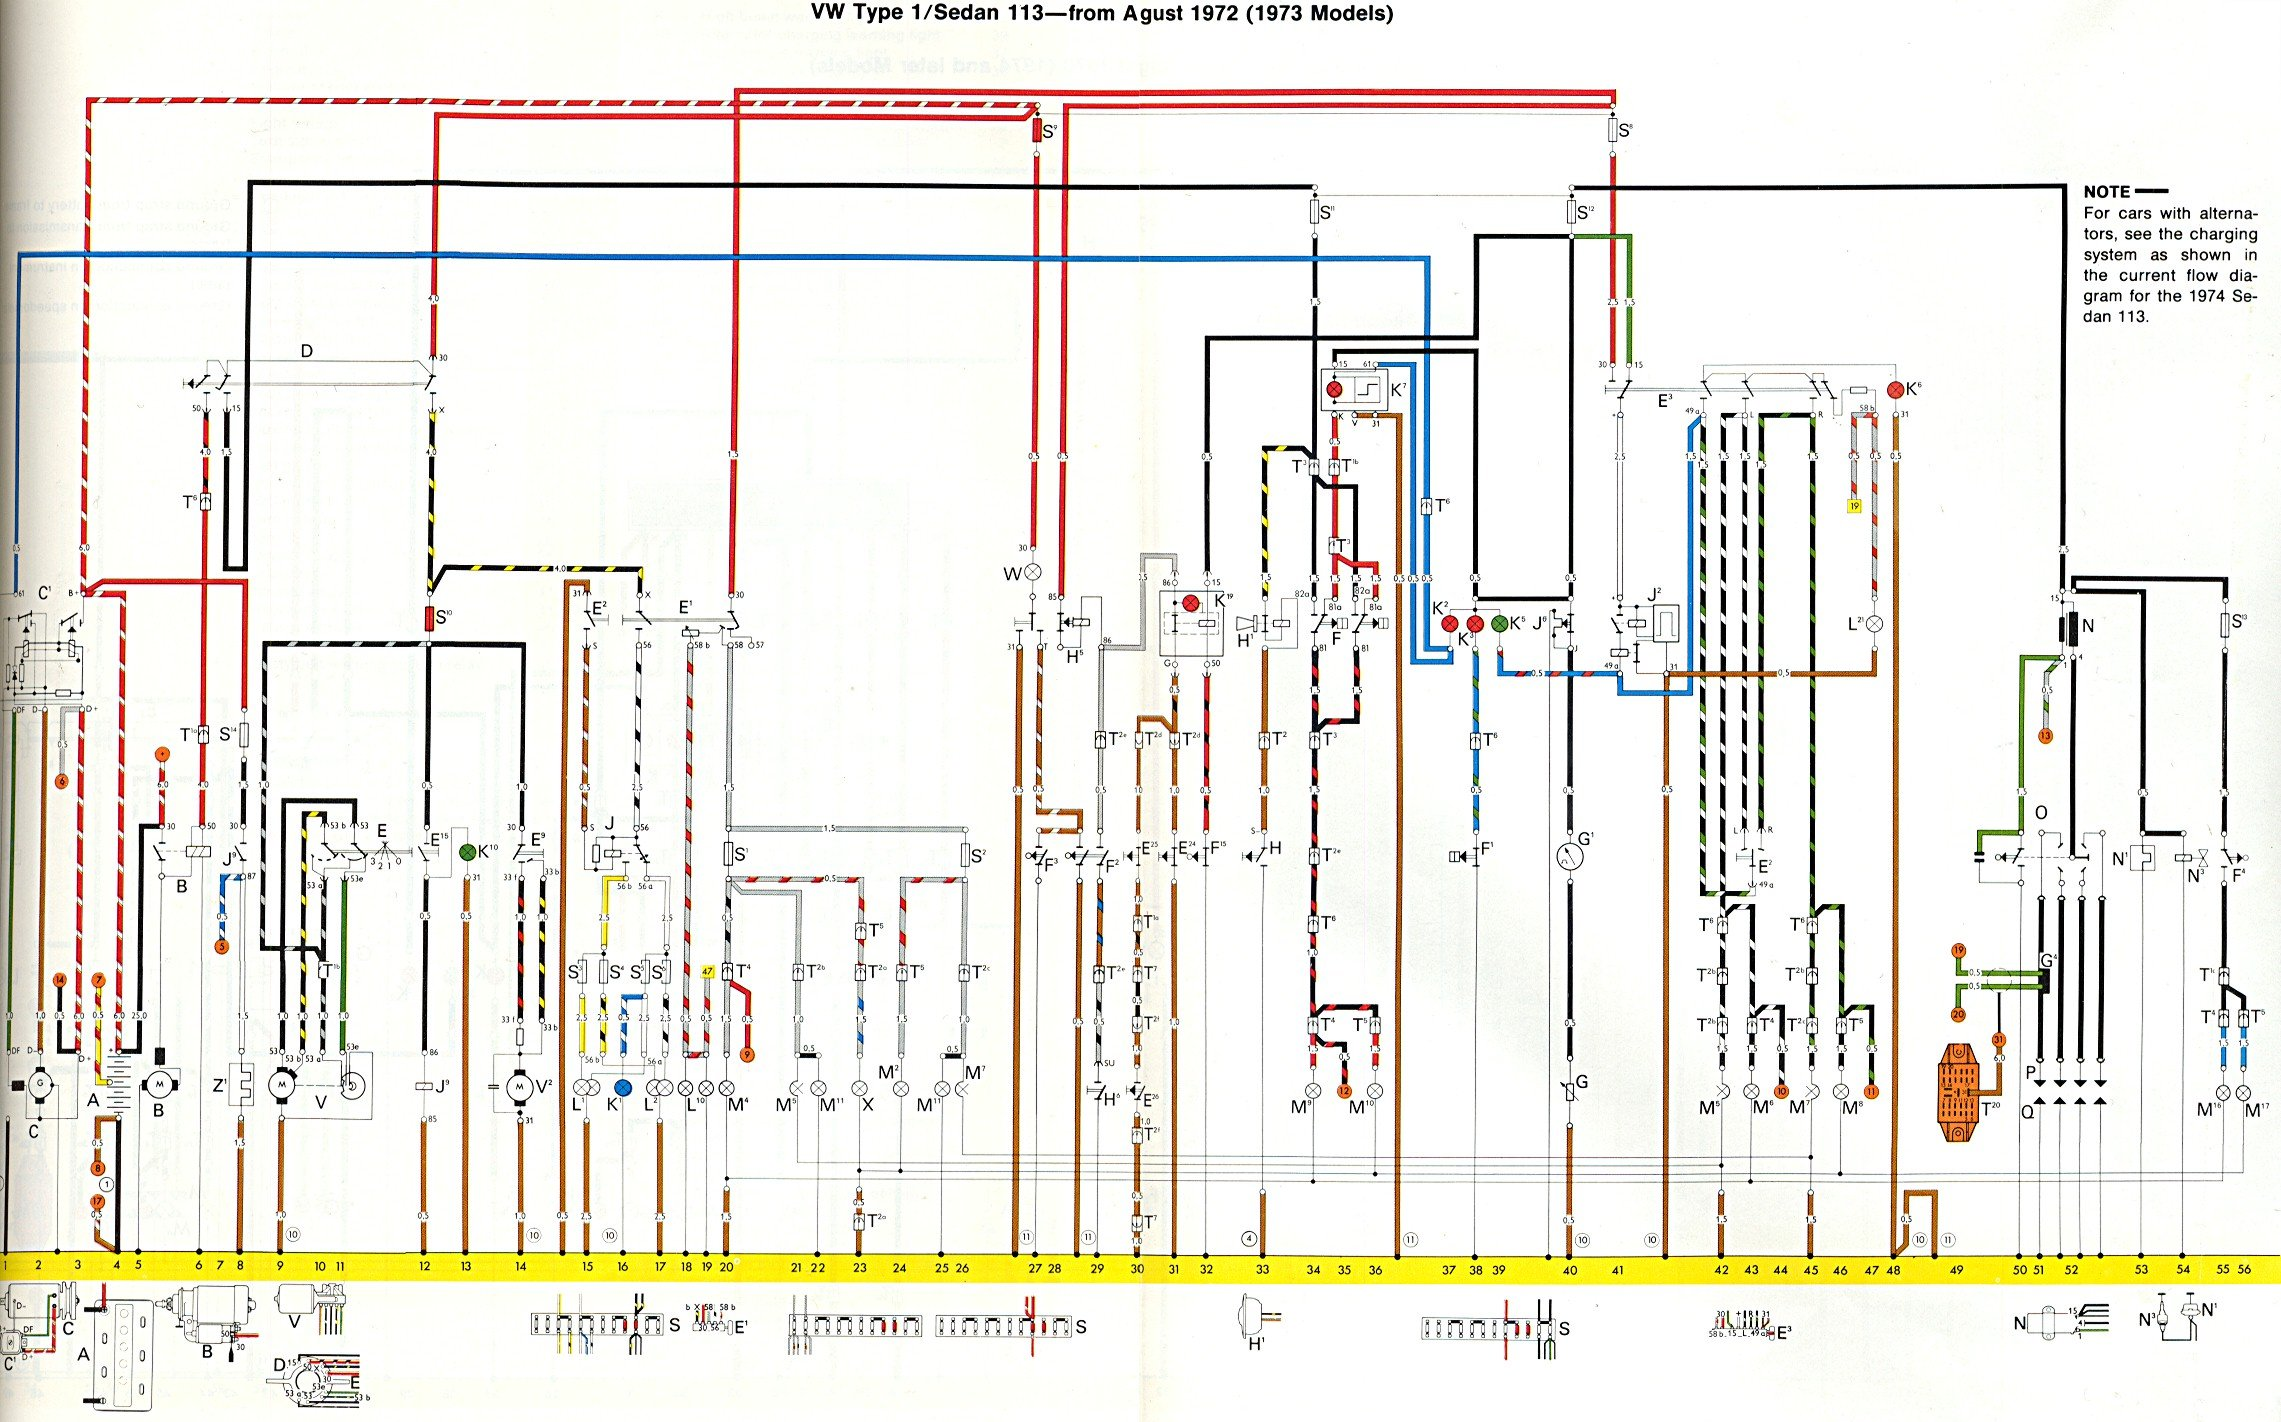 super beetle wiring diagram perko battery switch for boat 71 vw type 3 get free image